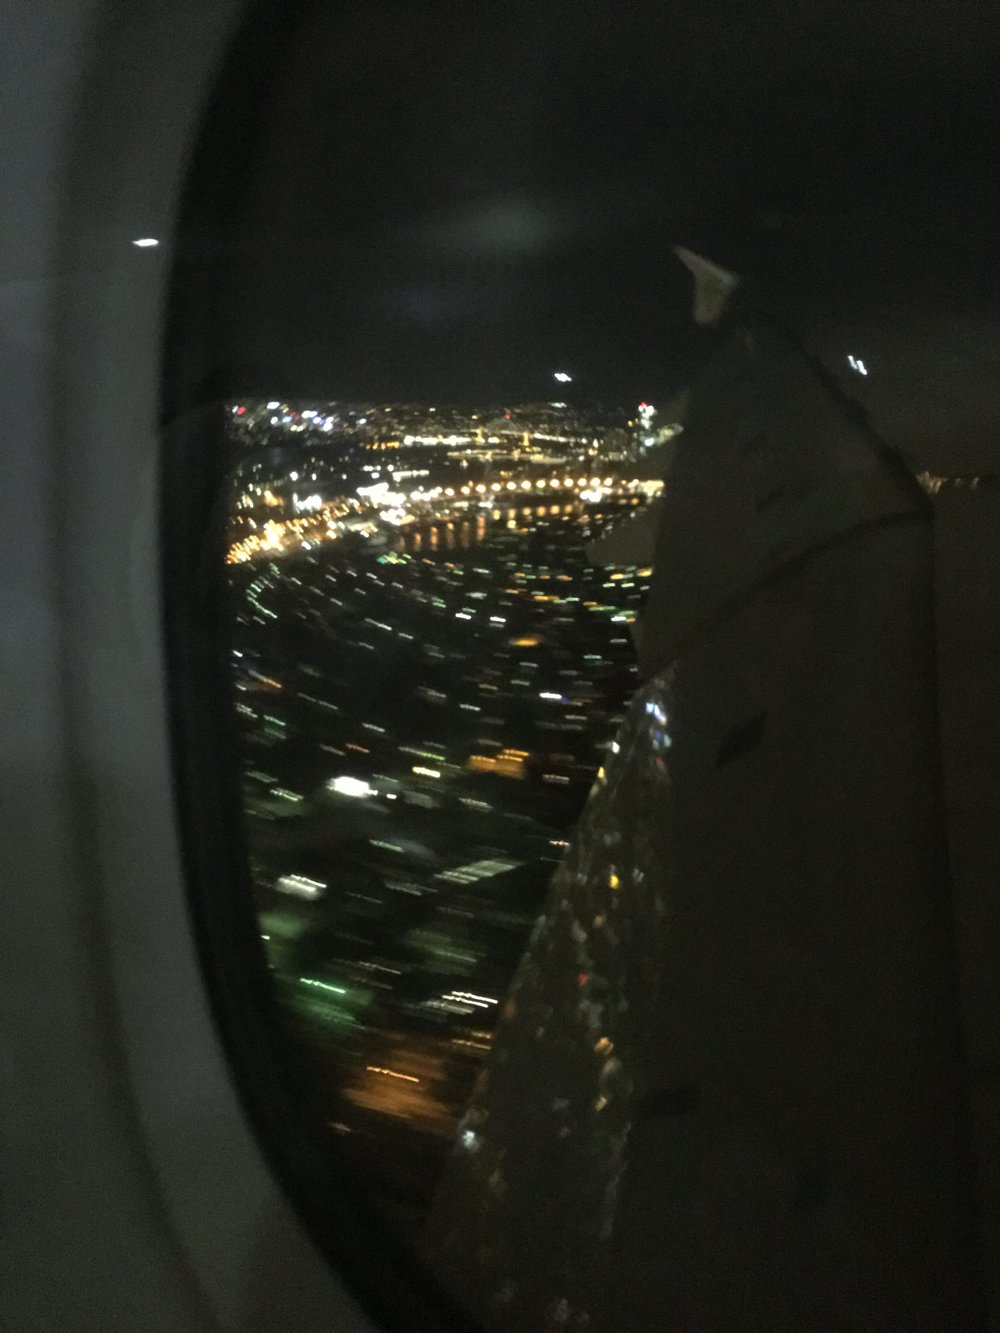 First (very blurry!) glimpse of Sydney, hope to do better tomorrow:)